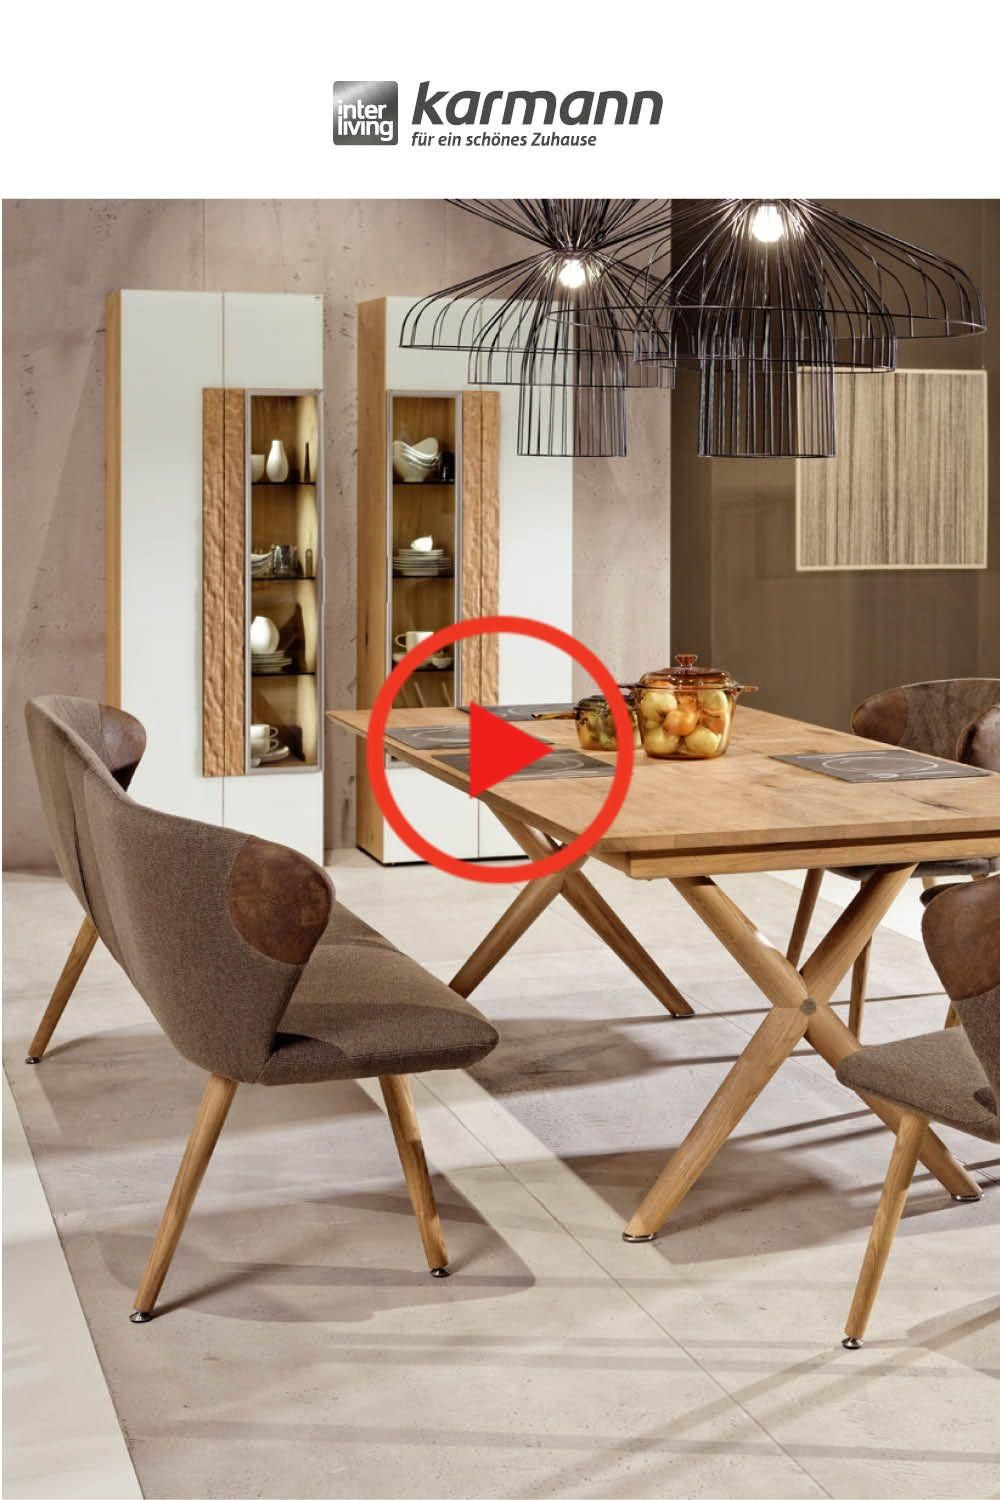 Voglauer Dining Table In 2020 Furniture Chair Dining Table